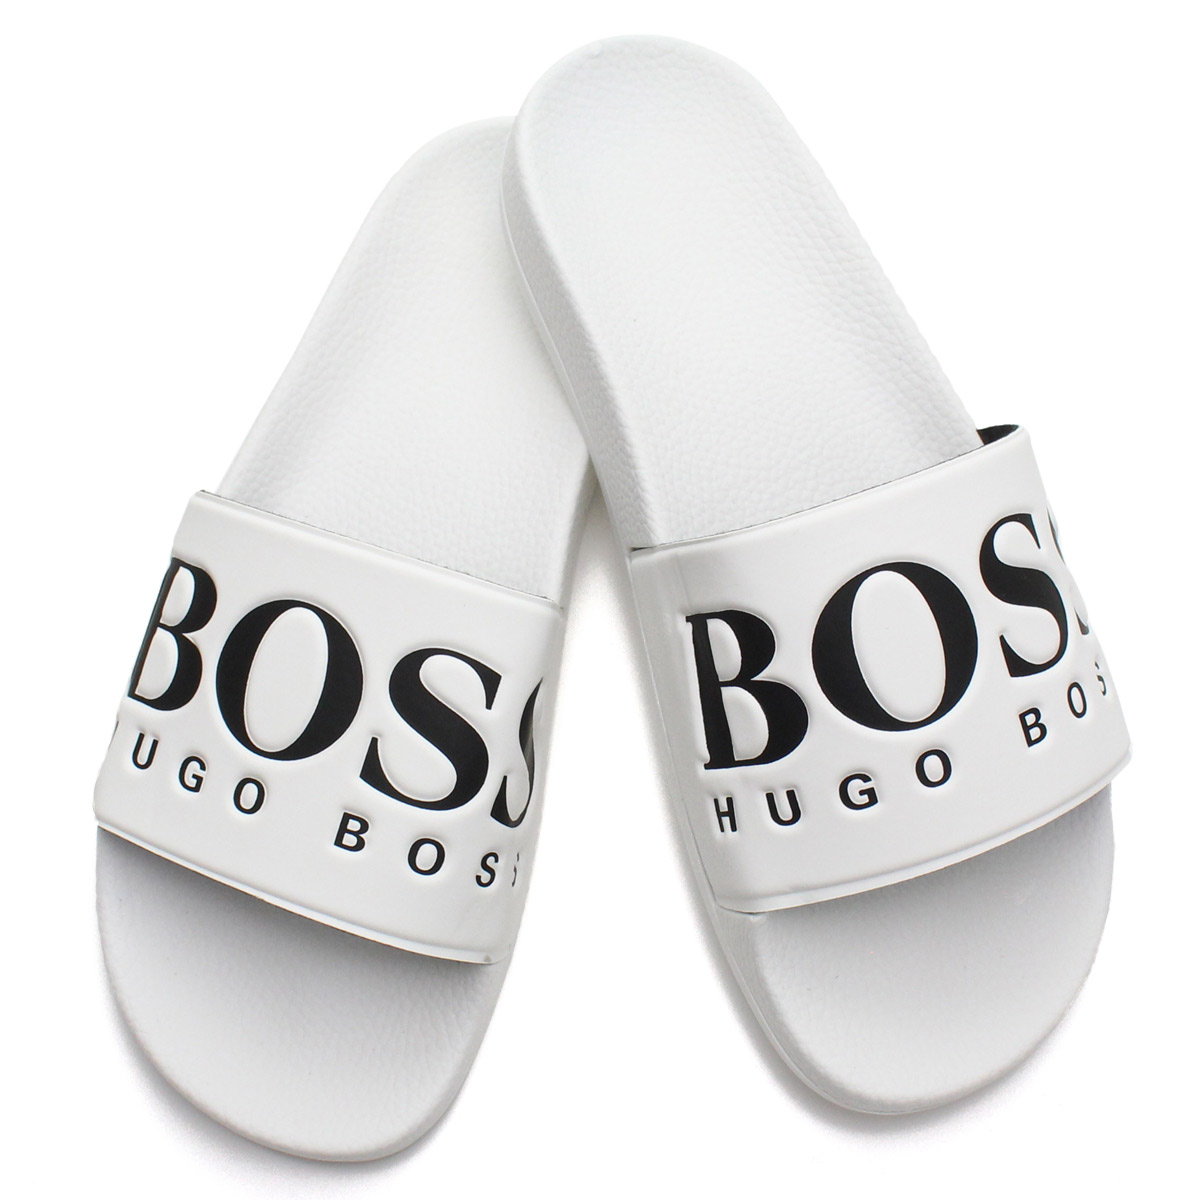 19c851878 It is a shower sandal of Hugo Boss. Even a beach and the poolside are sure  to get activity by a synthetic resin with the thickness resisting the water  wet ...